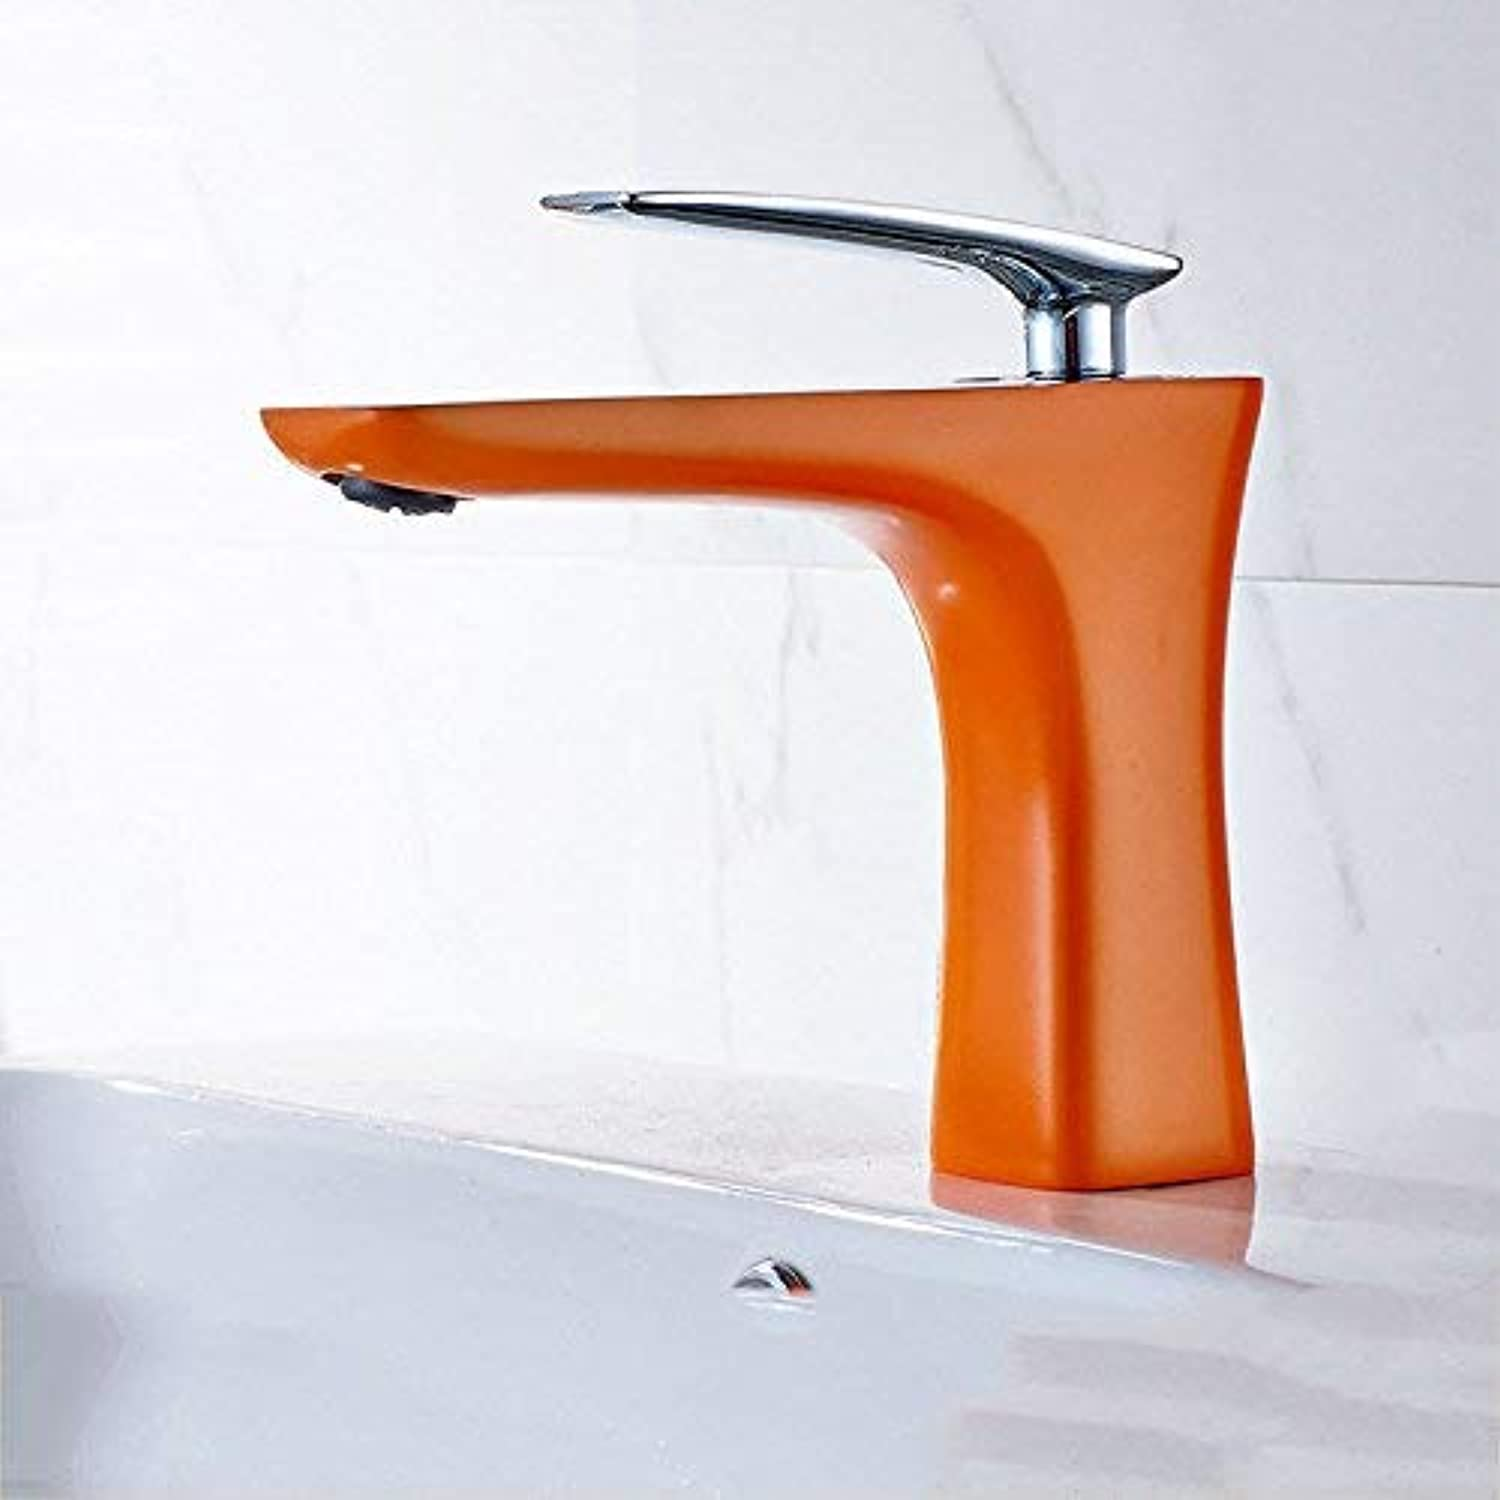 Ywqwdae Taps Kitchen Taps Basin Faucets Cold and Hot Water Mixer Bathroom Mixer Basin Mixer Tap Modern Paint Single Handle Single Hole Copper Green for Kitchen Or Bathroom Taps (color   orange)